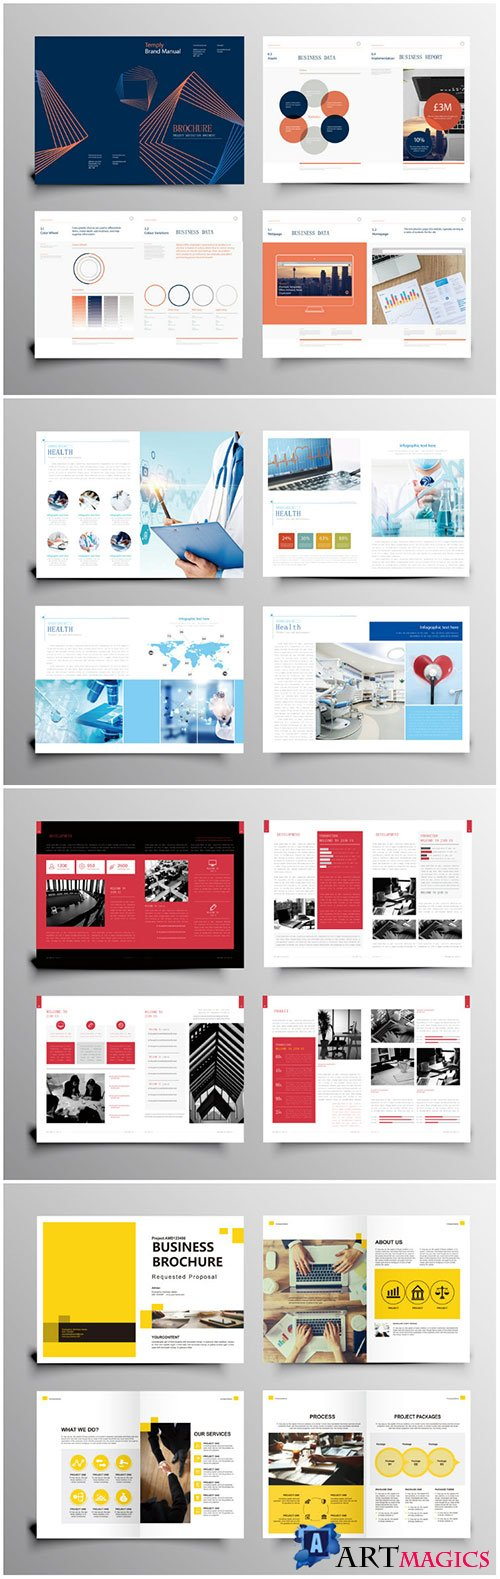 Brochure template vector layout design, corporate business annual report, magazine, flyer mockup # 233